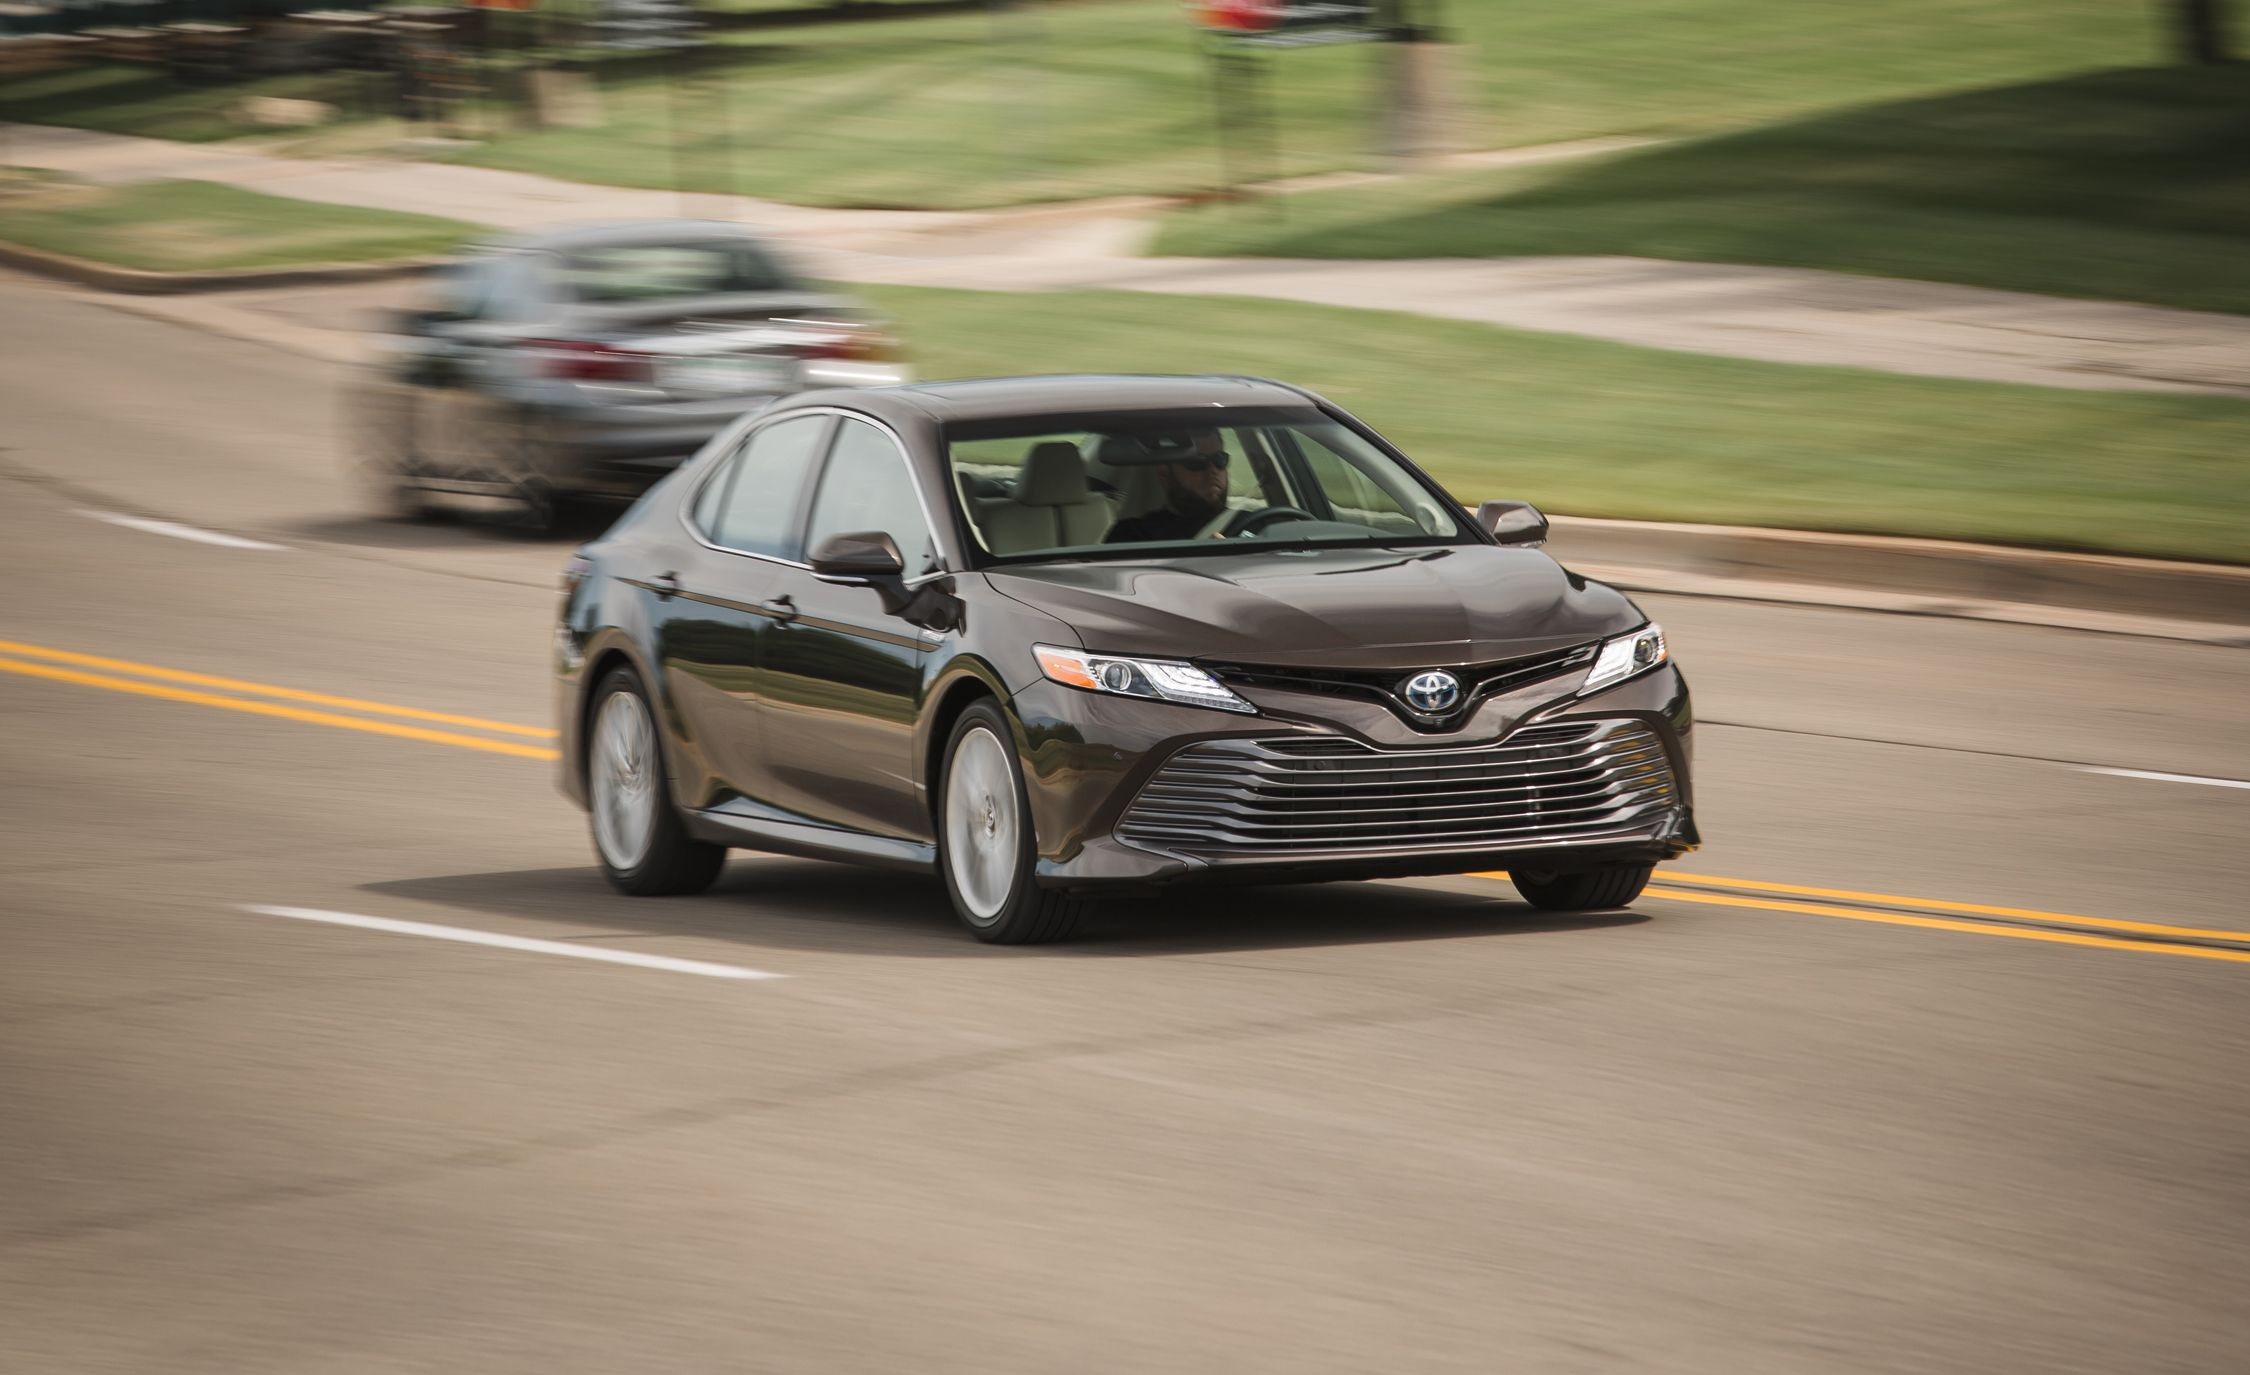 2020 Toyota Camry Reviews | Toyota Camry Price, Photos, and Specs | Car and  Driver